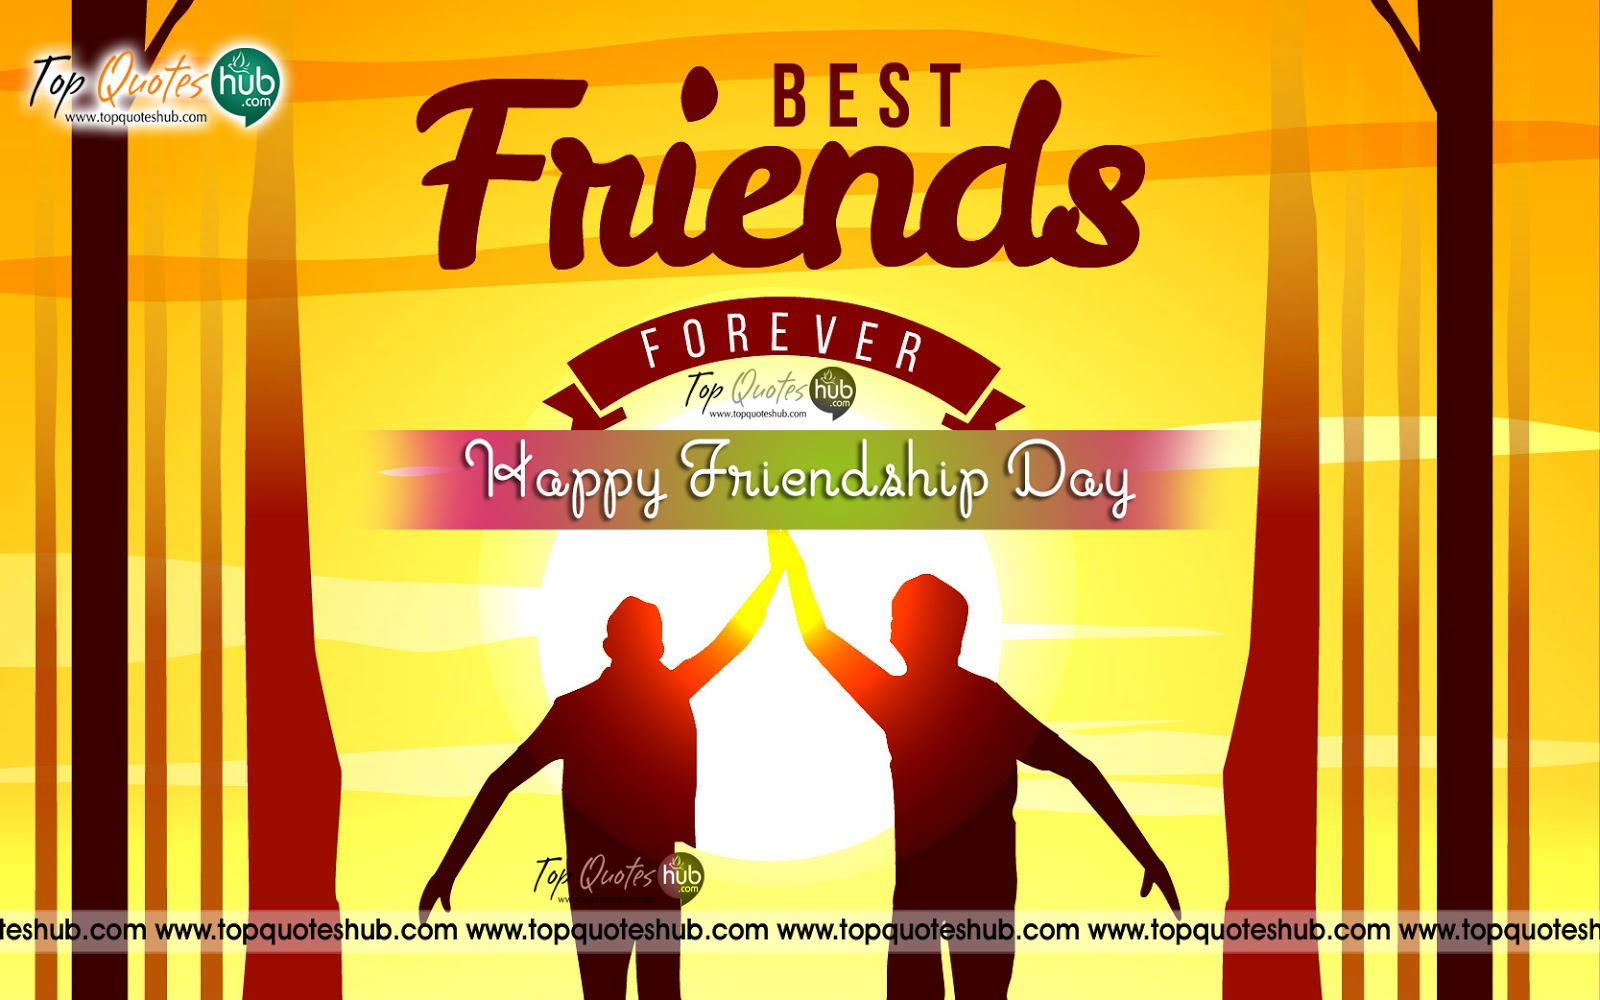 Happy friendship day quotes and greetings hd images topquoteshub happy friendship day quotes and greetings hd images m4hsunfo